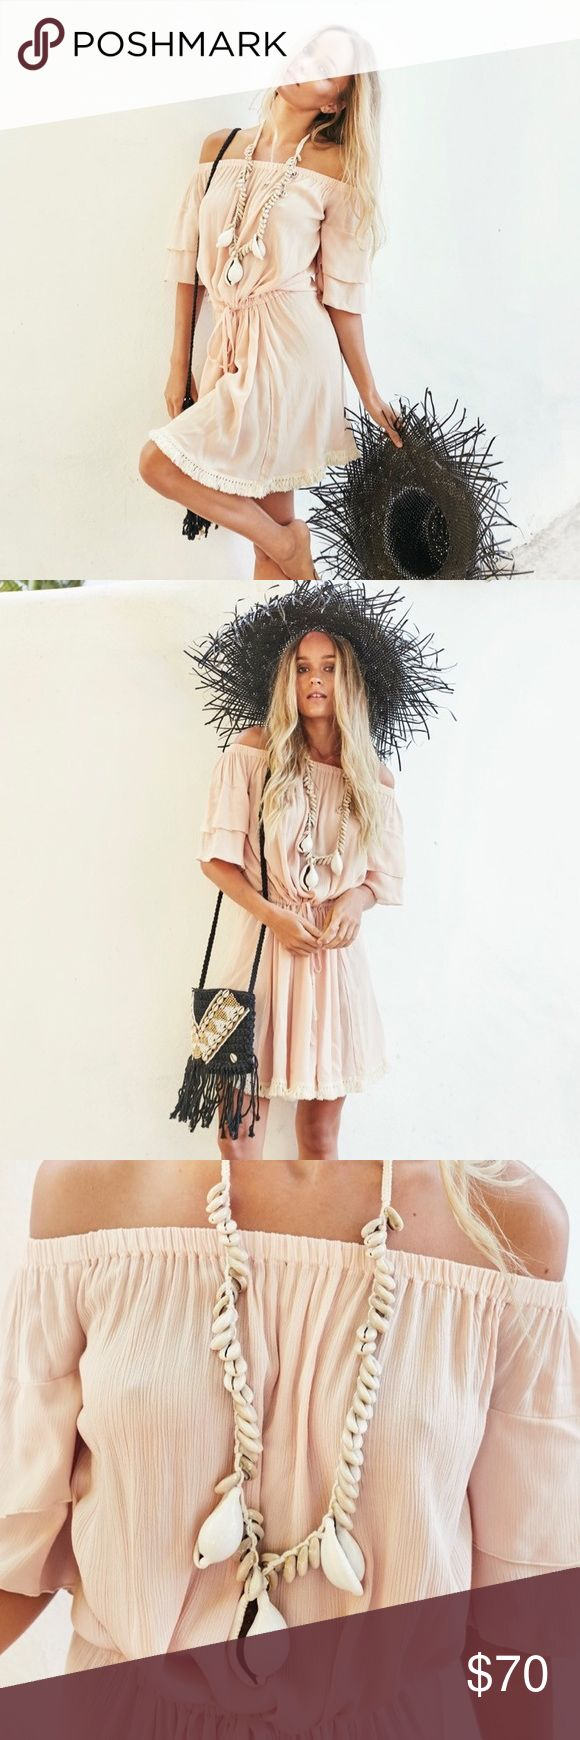 Nude tan cream mini dress 😍 100% rayon .. from Gypsy mermaid label .. size small. NWT - tagging free people for views .. $139 on website right now Free People Dresses Mini